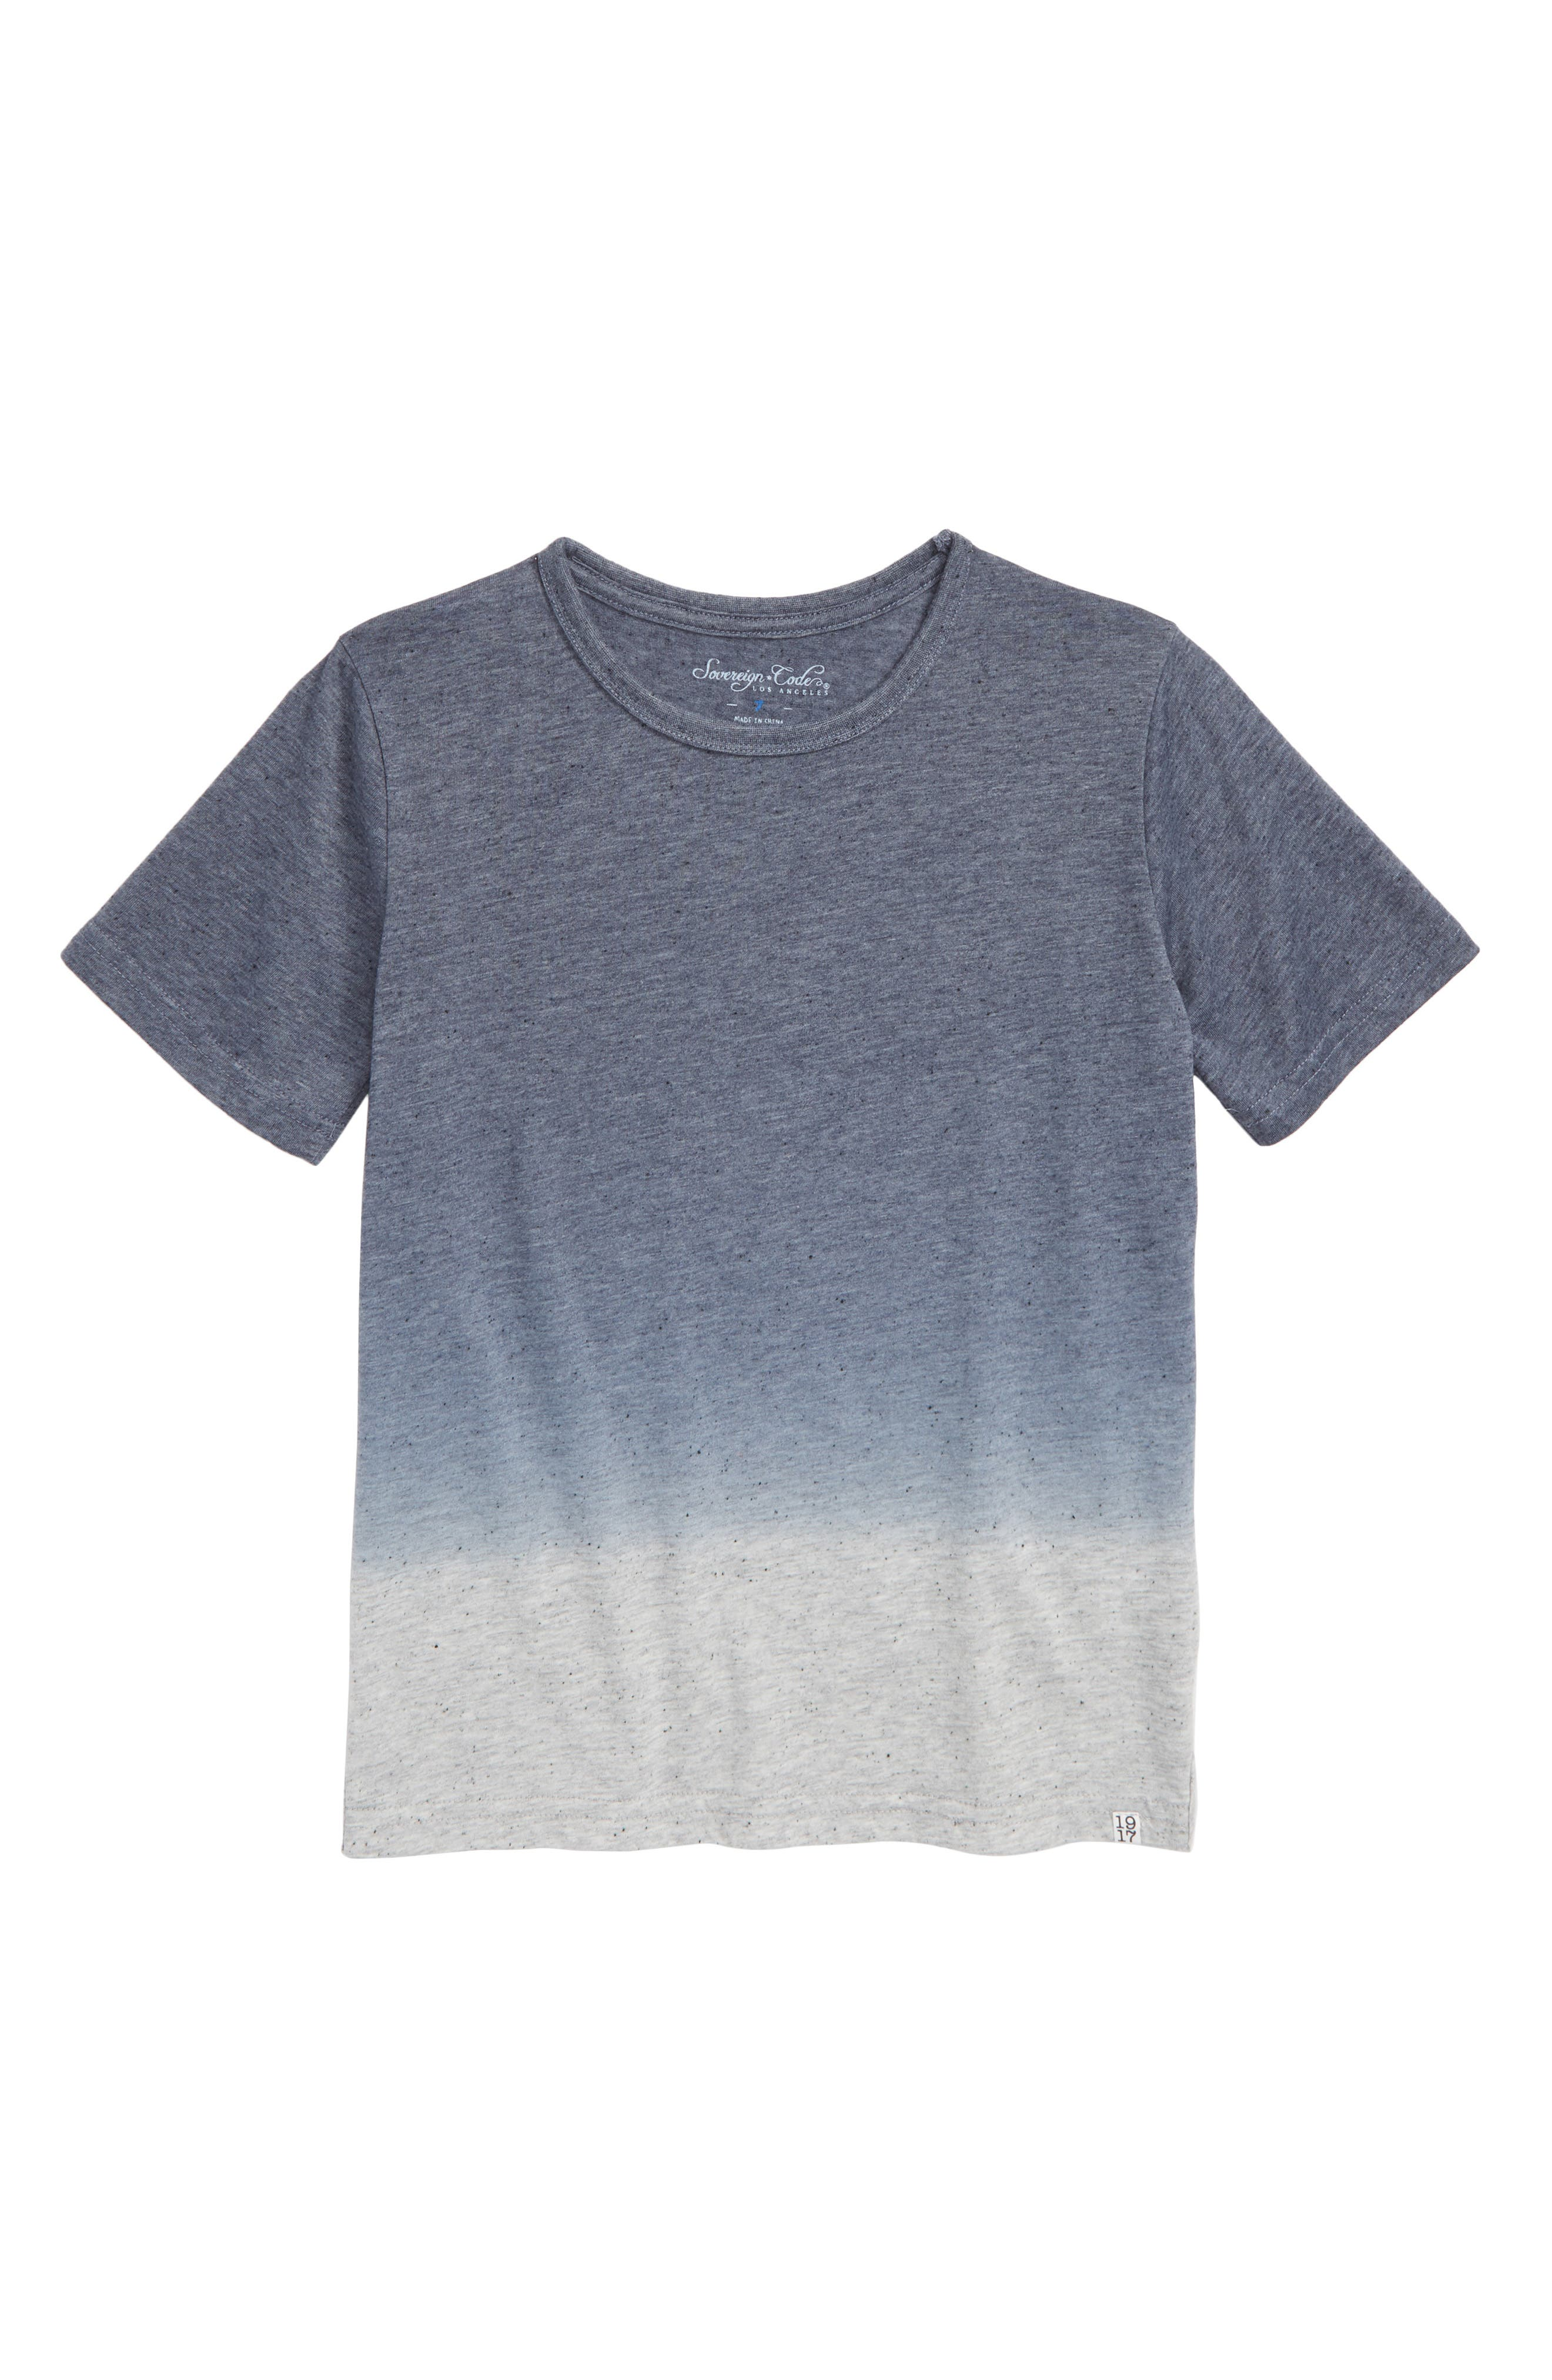 Allister T-Shirt,                             Main thumbnail 1, color,                             NAVY HEATHER GREY